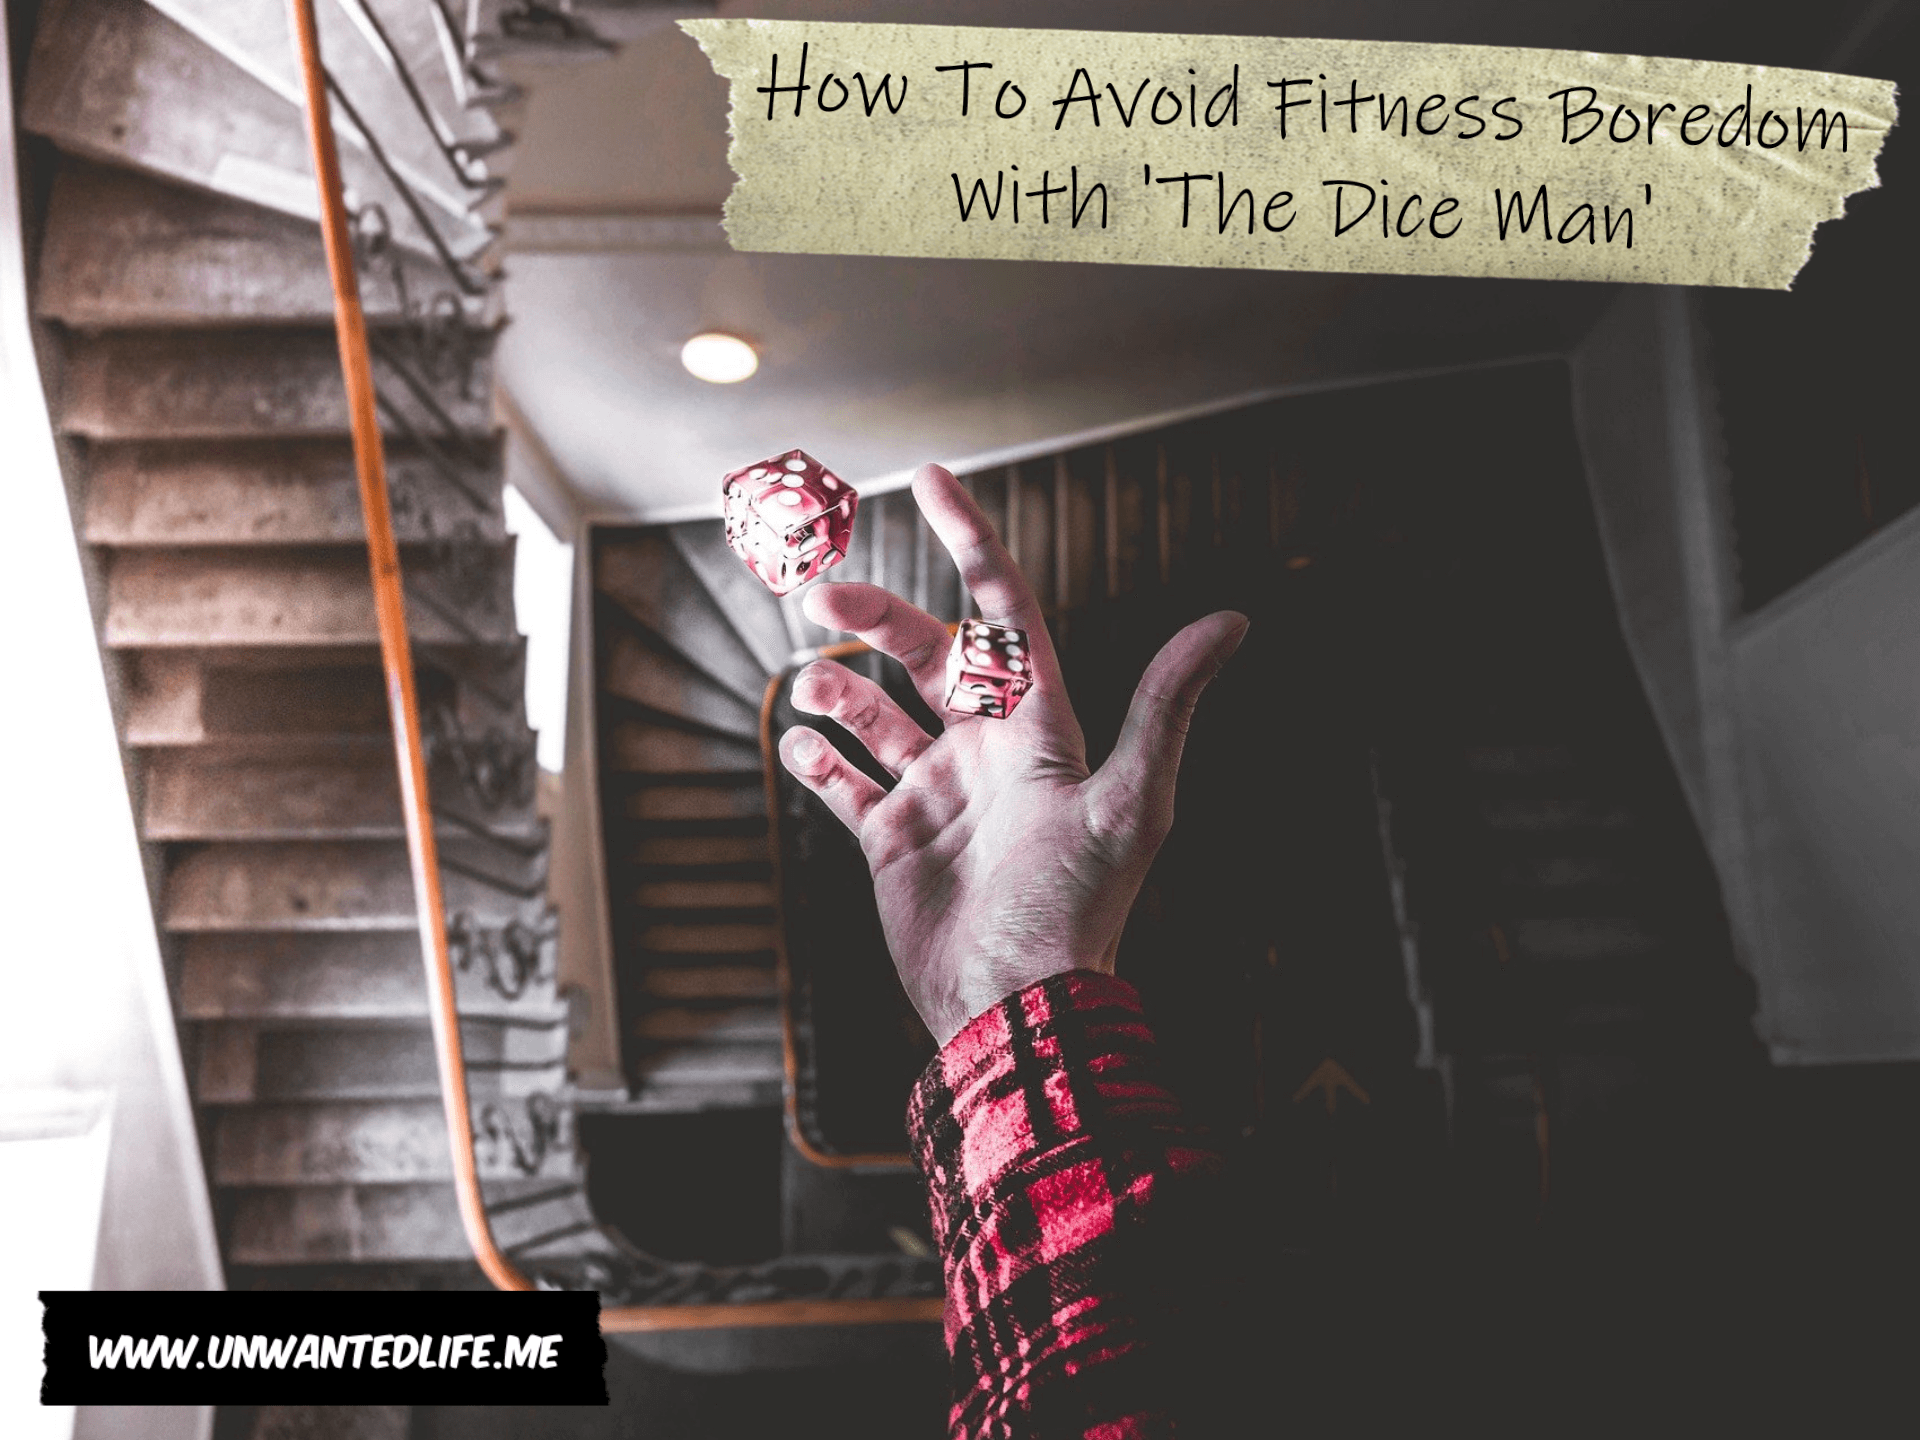 A photo a white man's hand casting dice into a stairwell to represent the topic of the article - How To Avoid Fitness Boredom With 'The Dice Man'